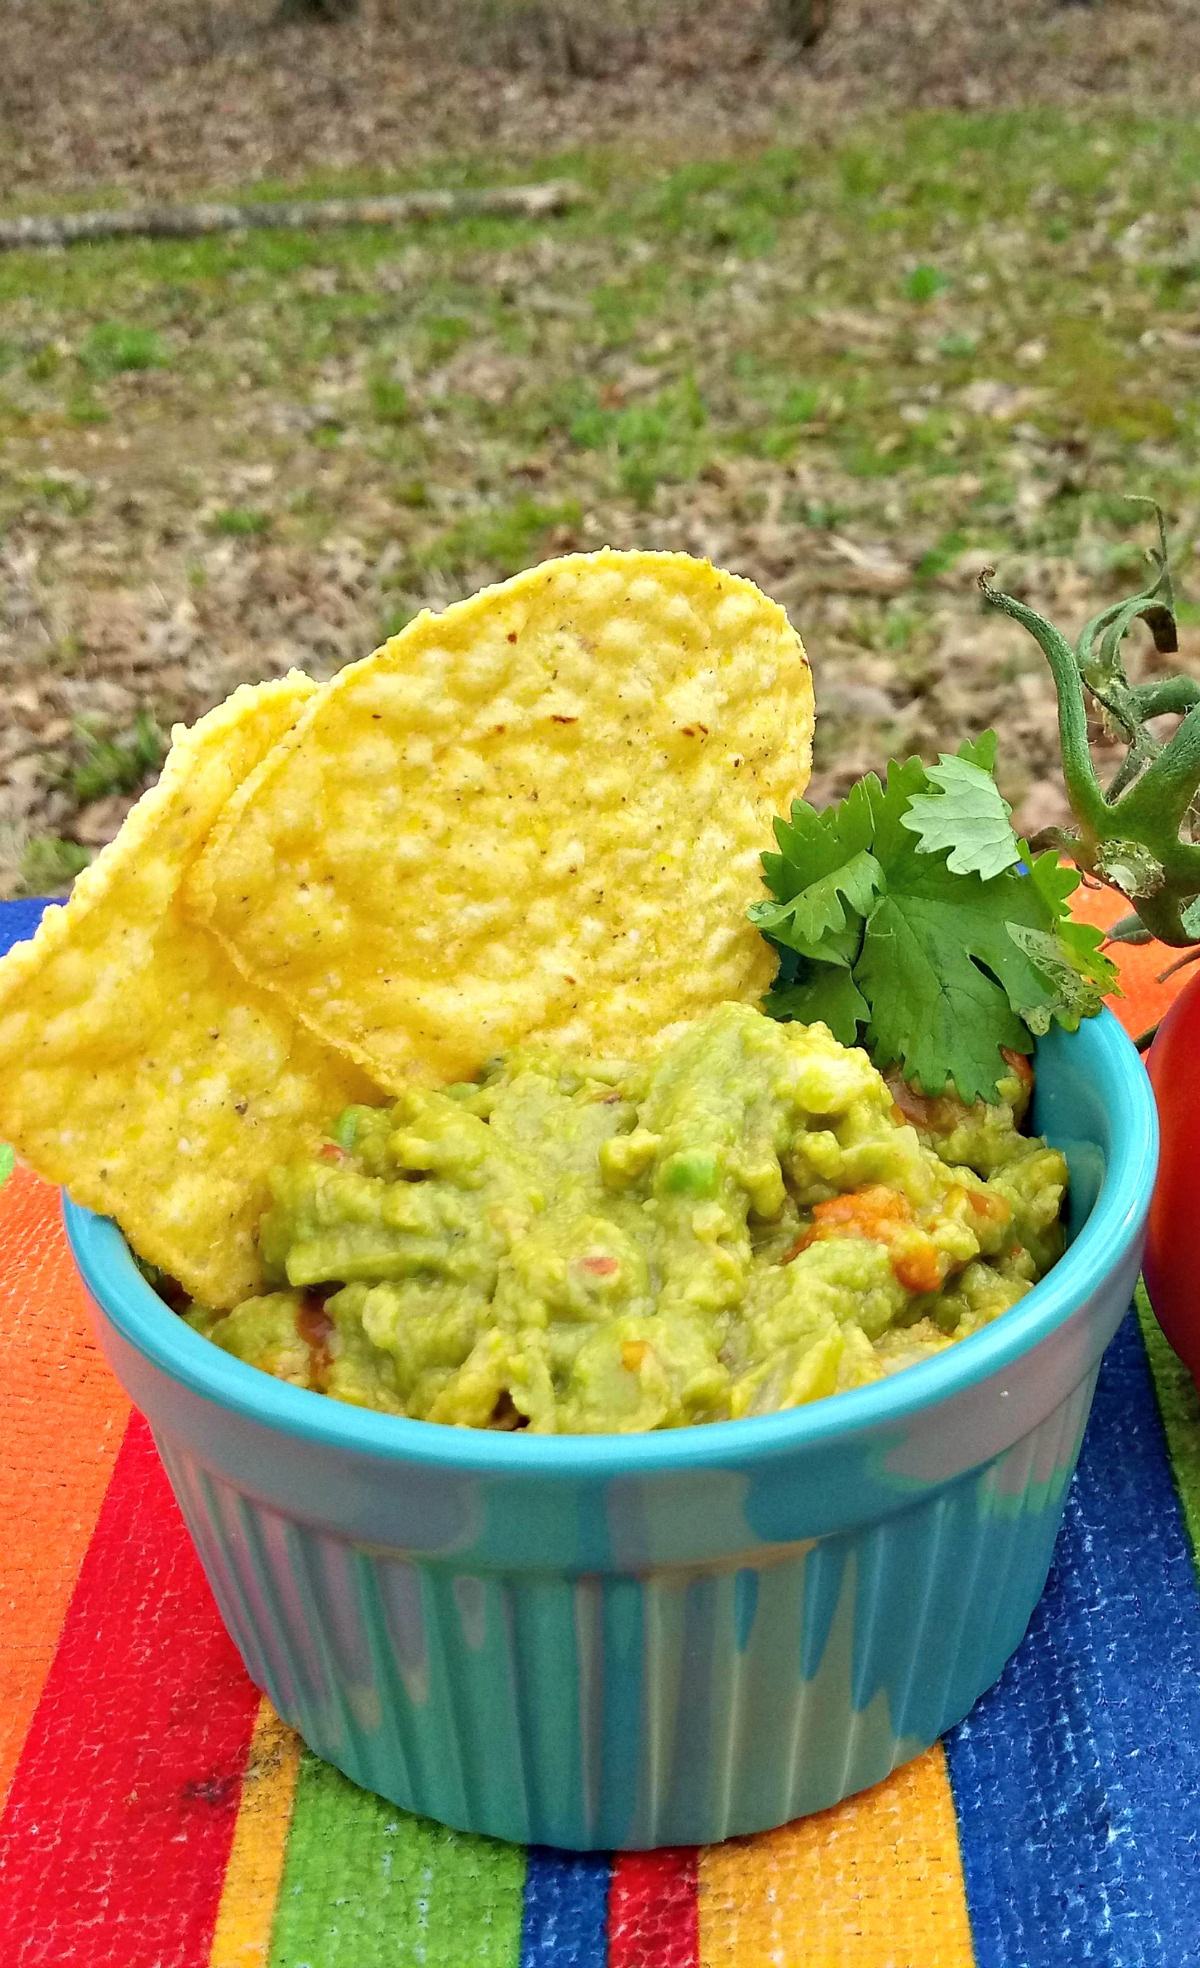 Grilled Veggie Guacamole Recipe for a tasty twist on an old favorite